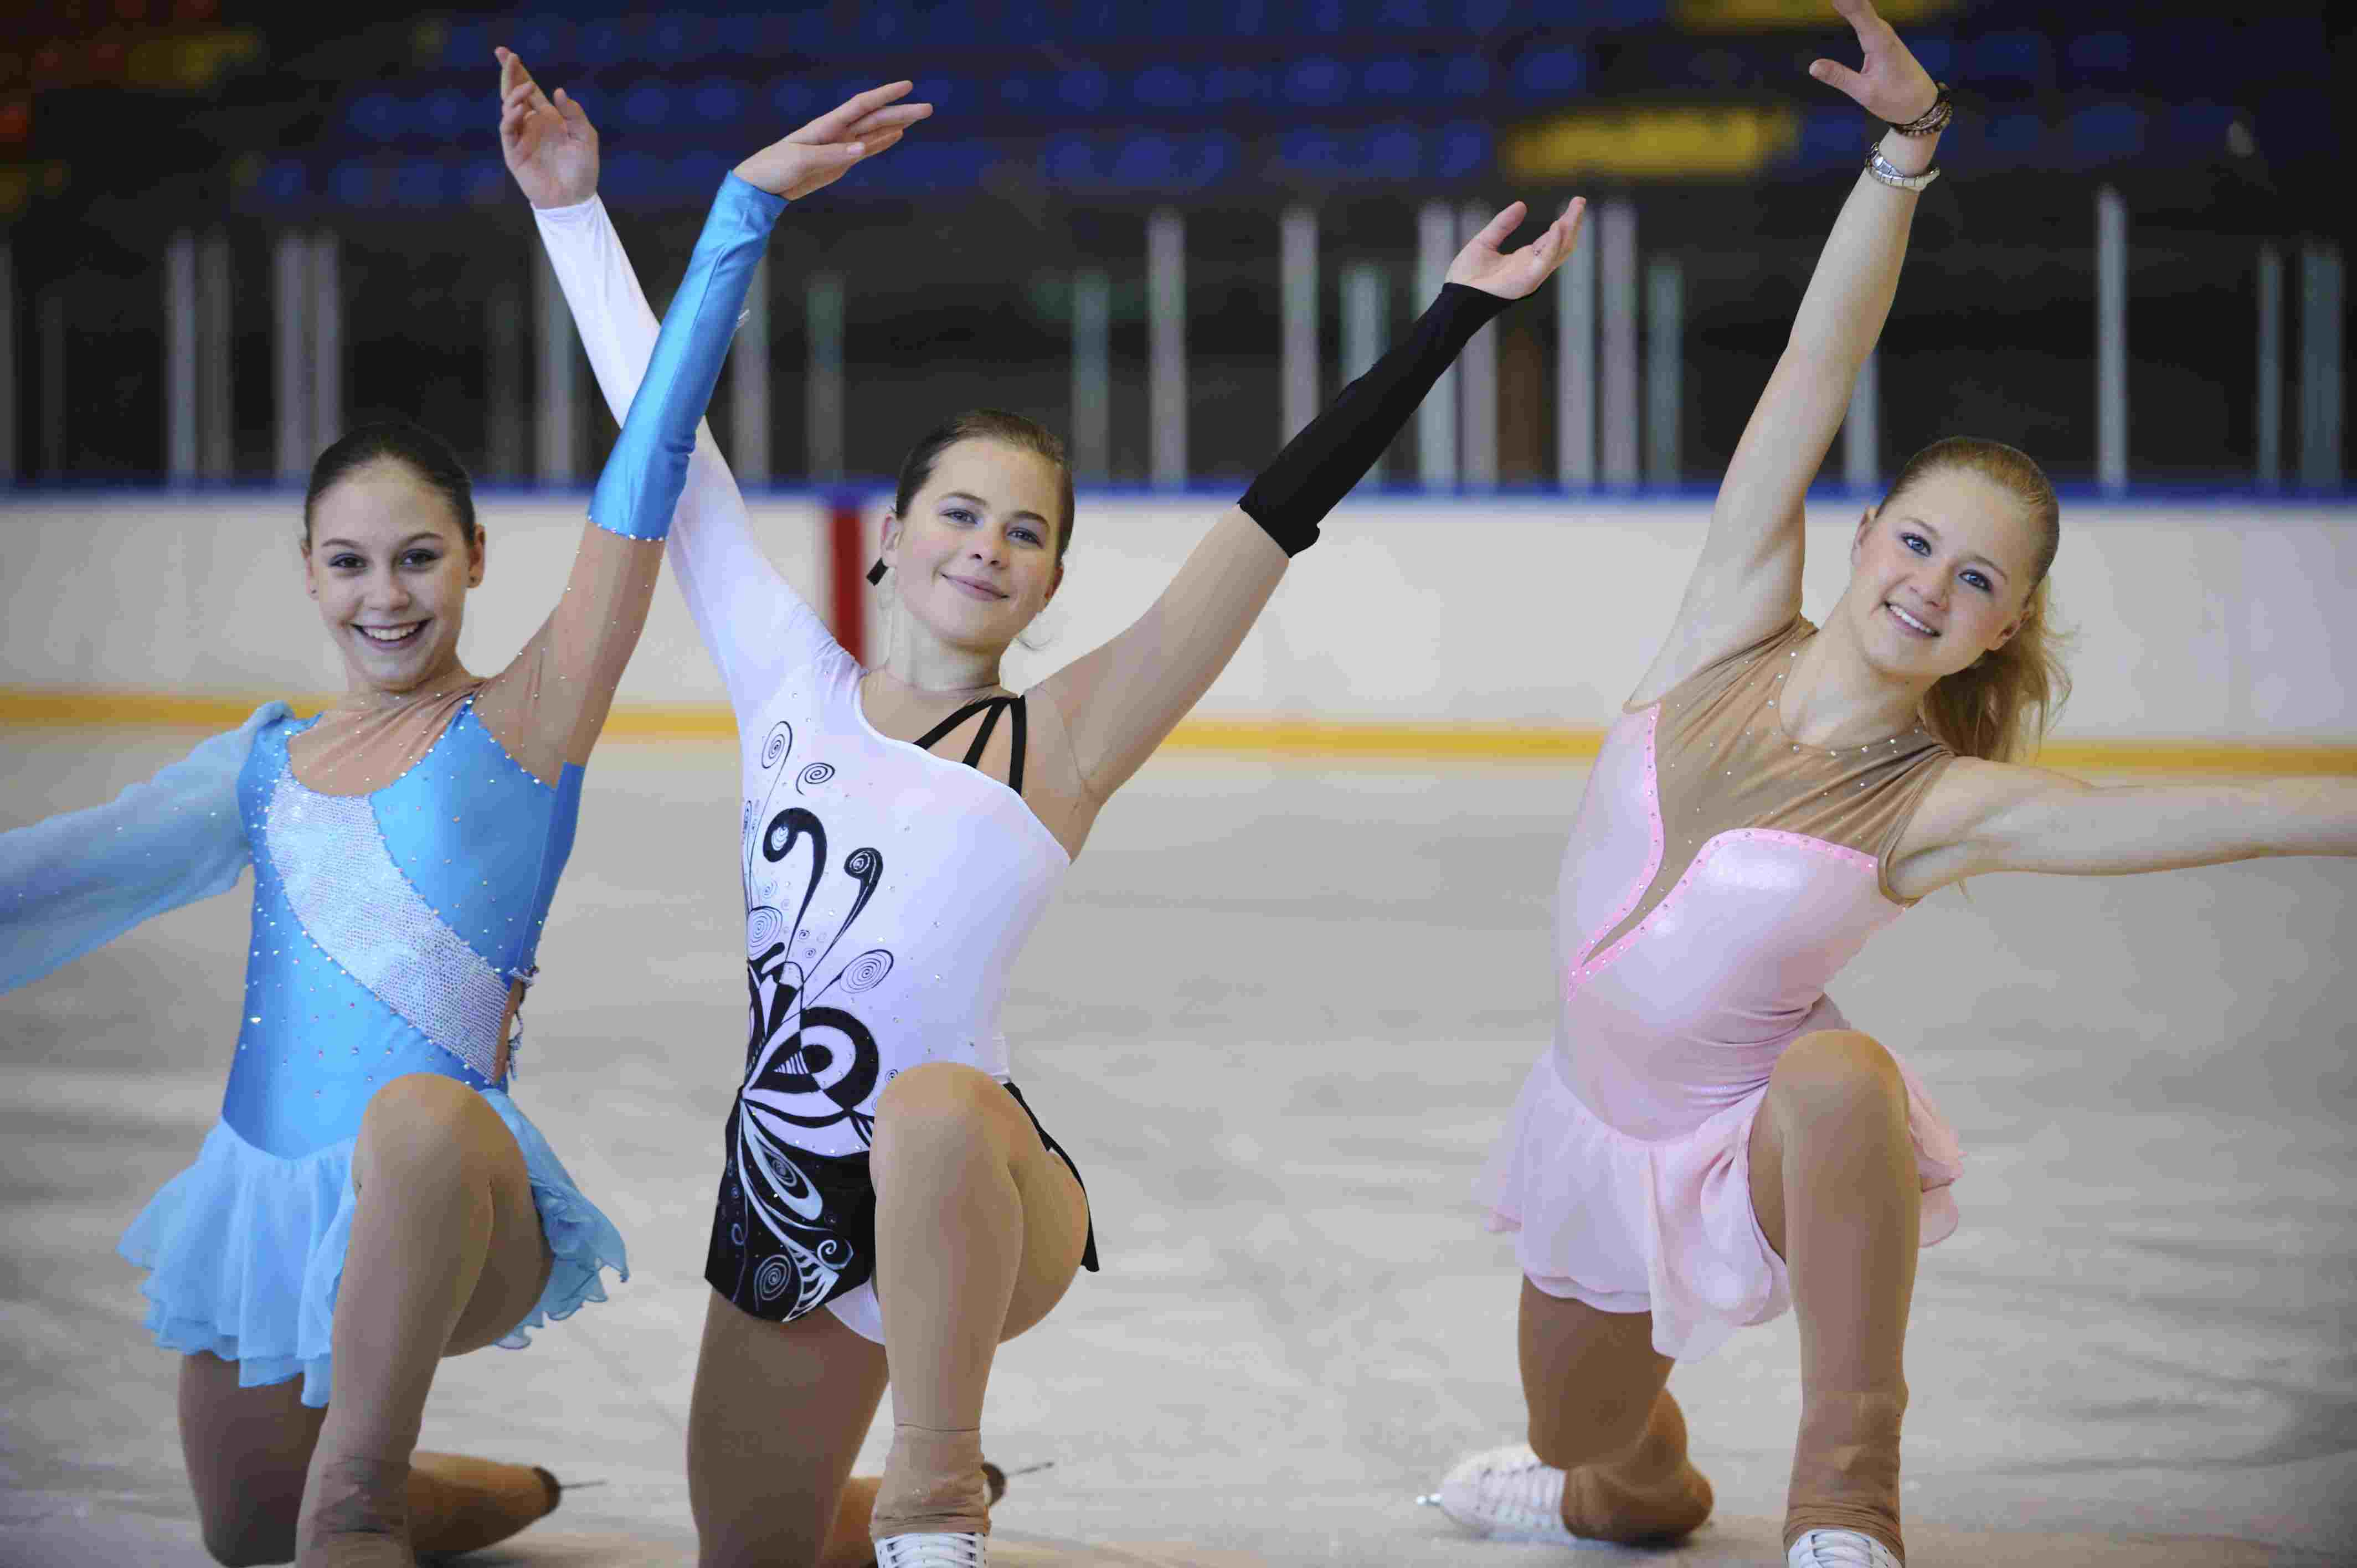 Figure Skating Is Very, Very Expensive